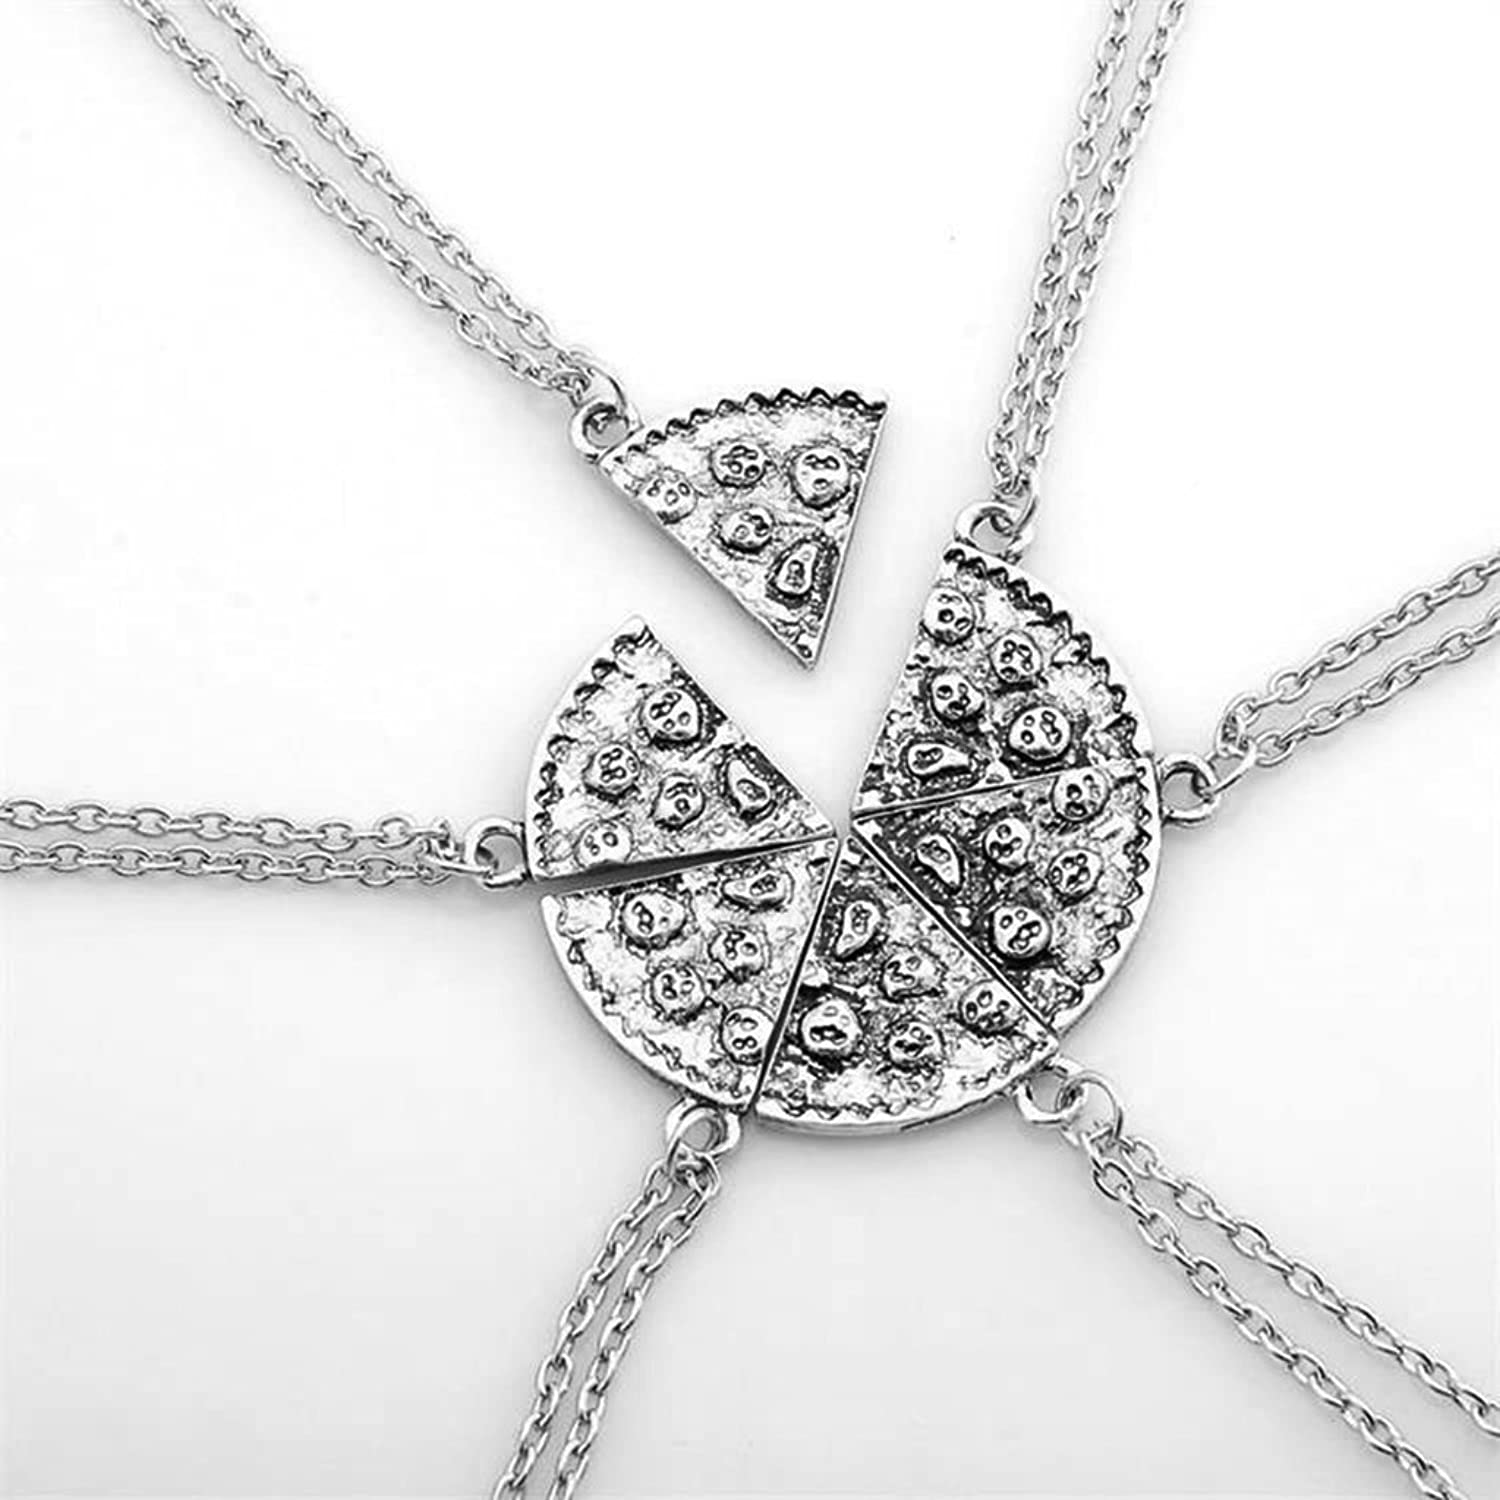 shaped aliexpress in fashion picture necklaces item com photo pendant from heart on pc accessories necklace locket for jewelry frame lockets friend